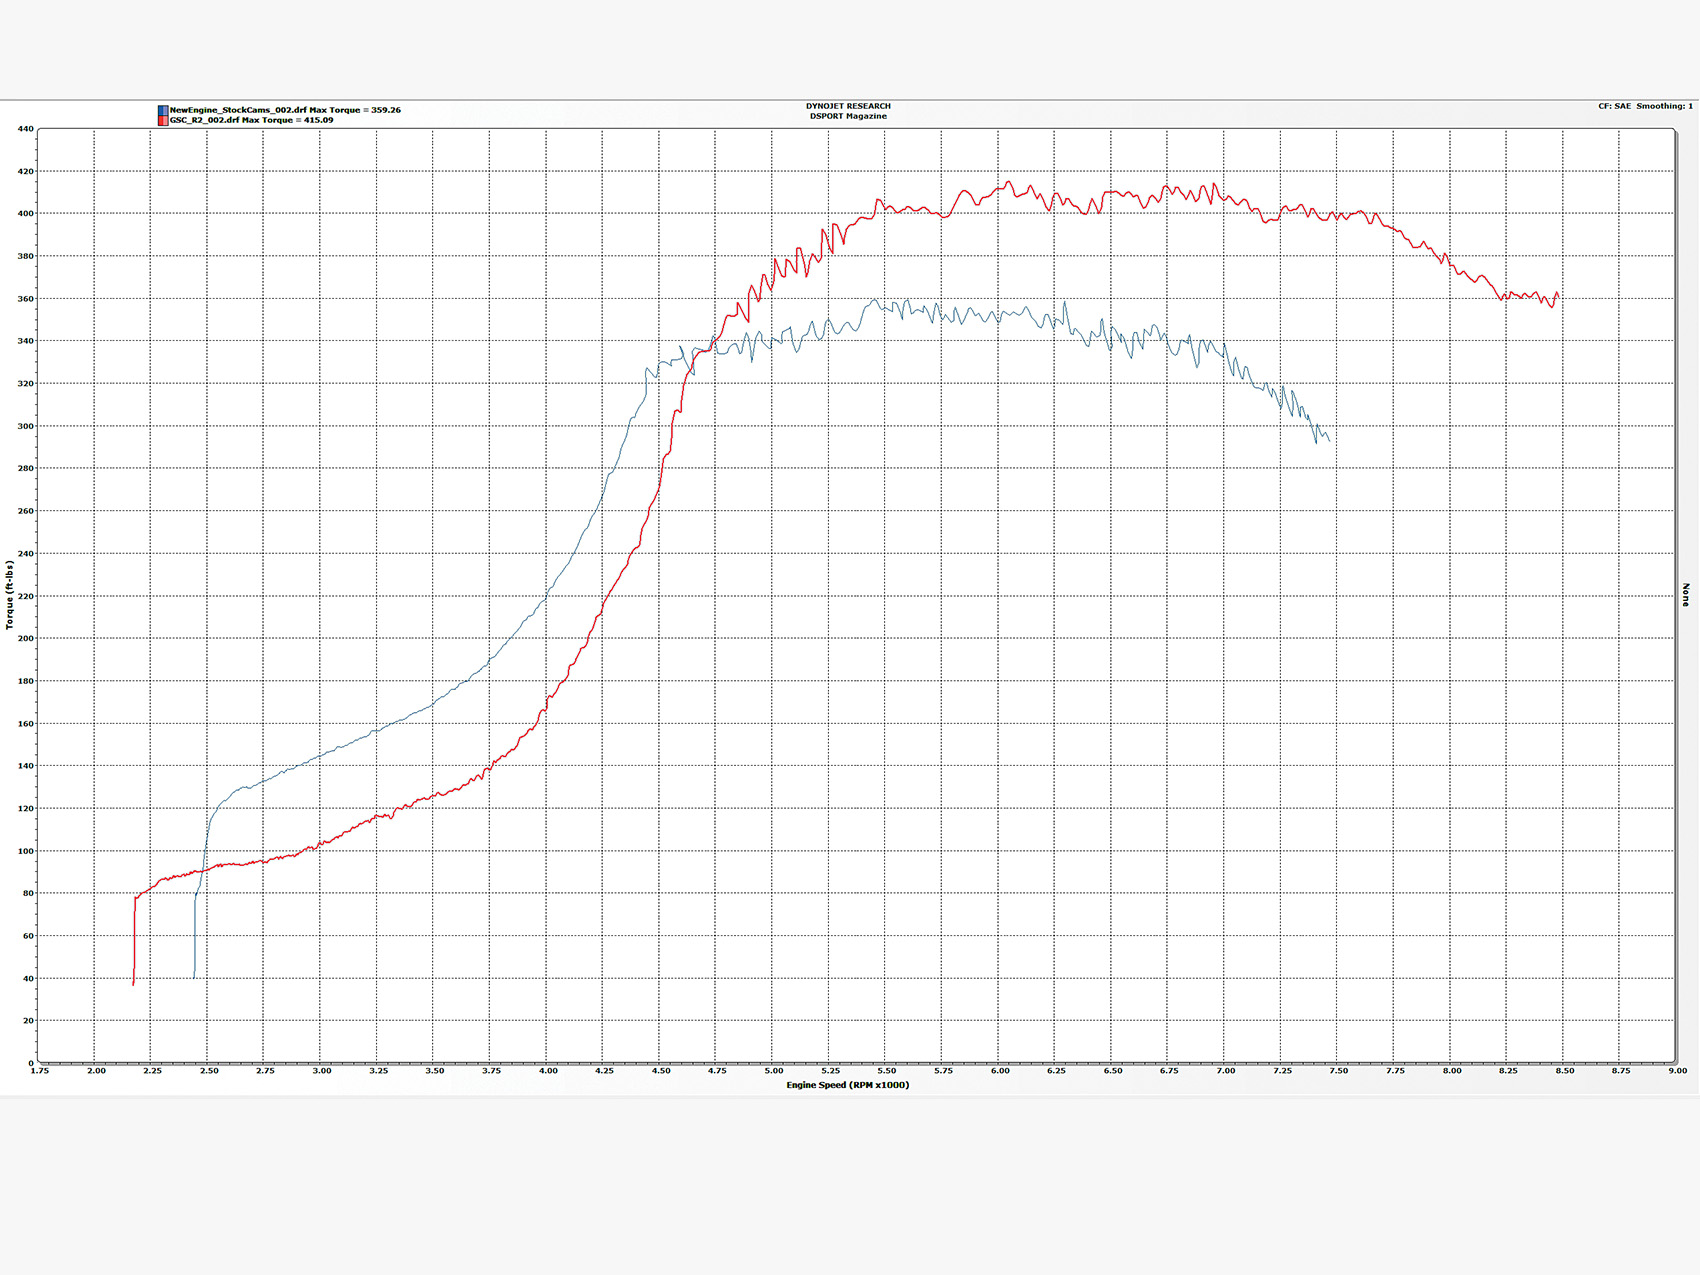 Gsc R2 Camshafts Tested For The Evo 4g63 Engine